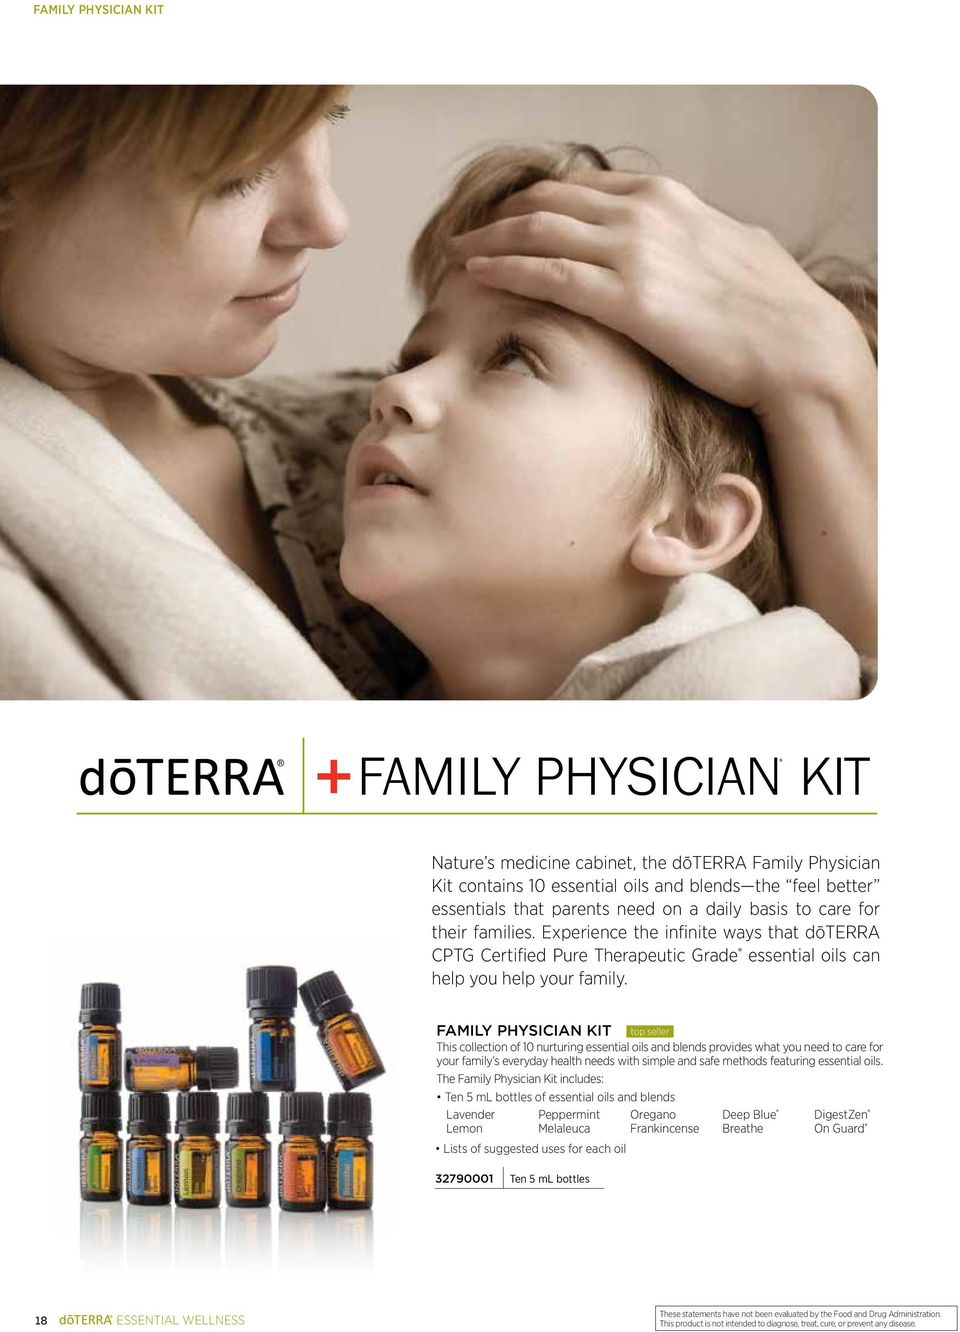 FAMILY PHYSICIAN KIT top seller This collection of 10 nurturing essential oils and blends provides what you need to care for your family s everyday health needs with simple and safe methods featuring